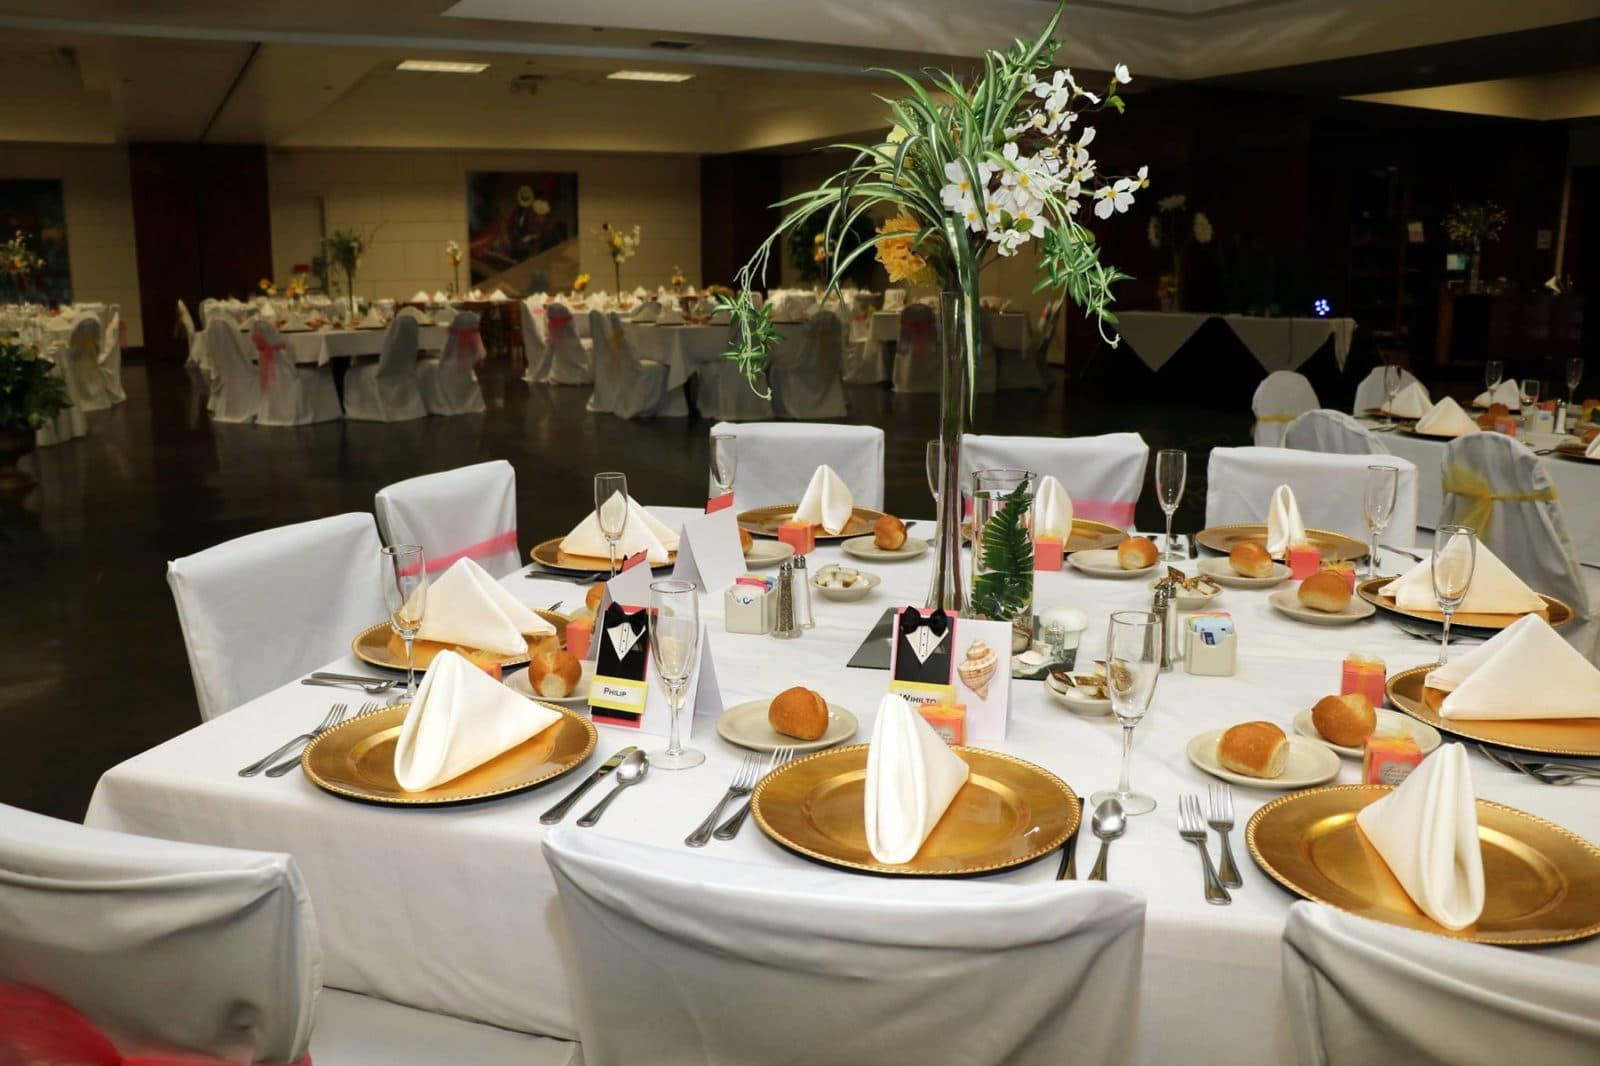 Wedding Catering Services Wichita Wedding Reception Caterers